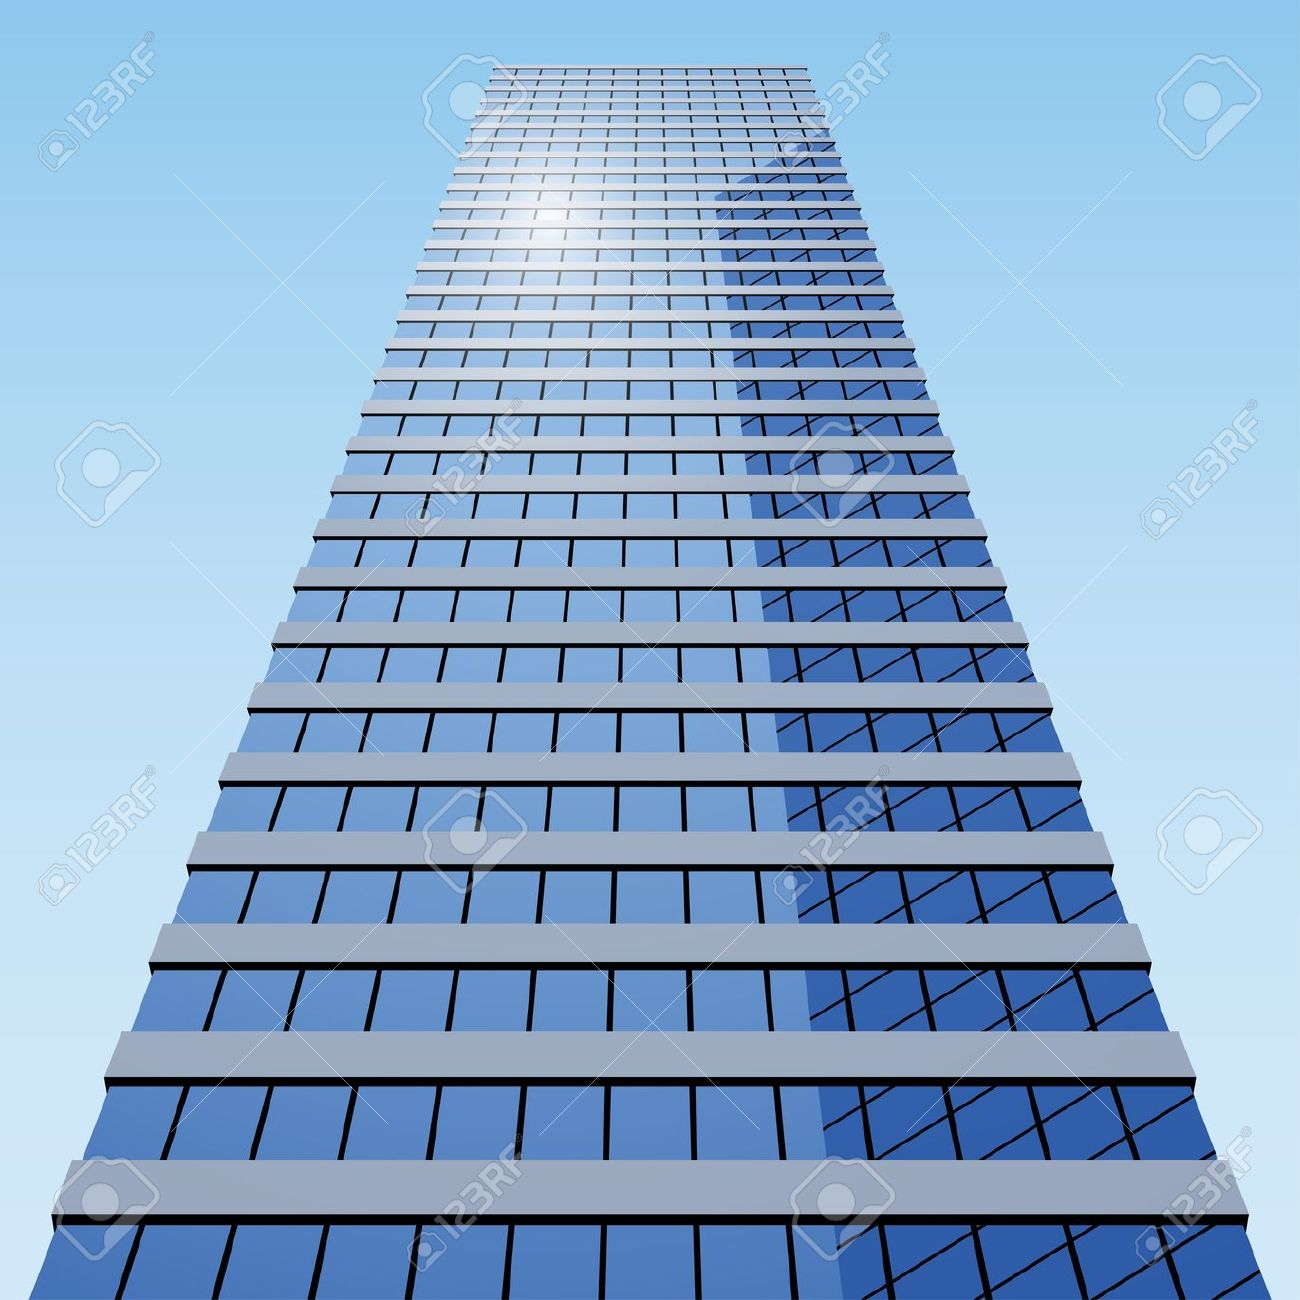 Glass Building Clipart.